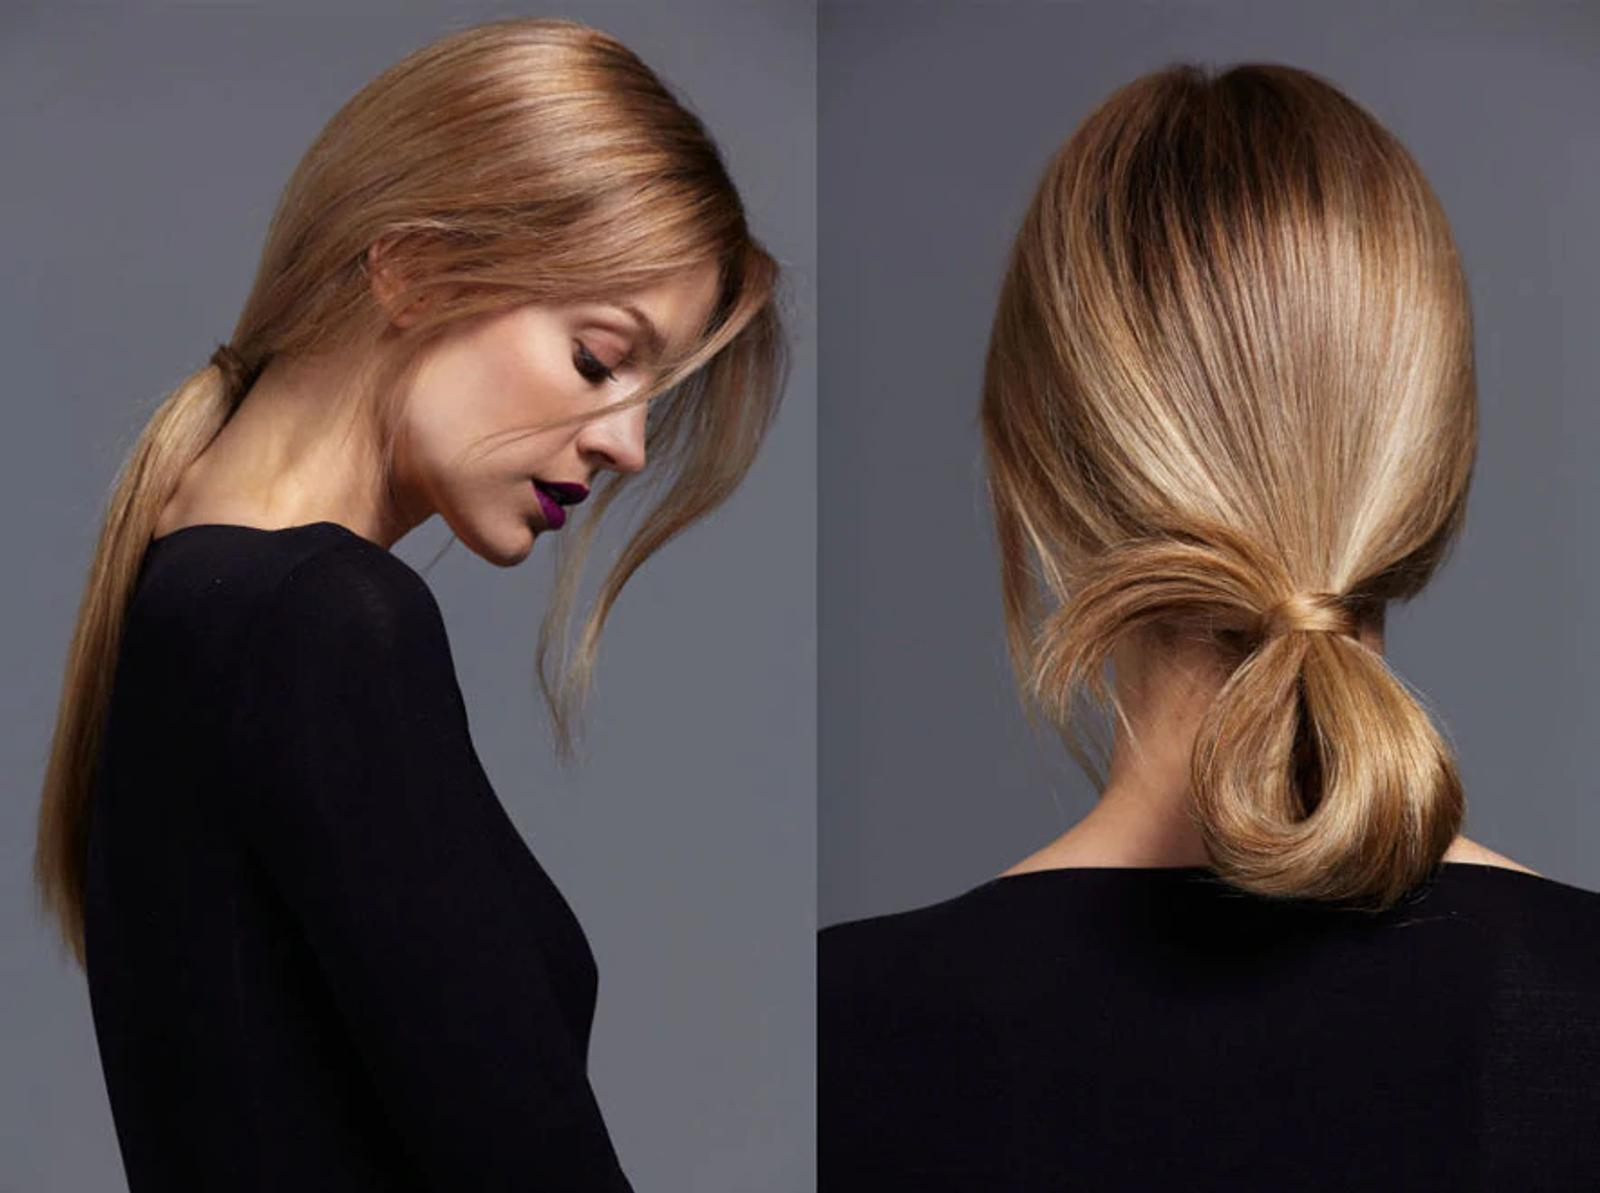 Image of Model with Ponytail and Image of Model with Loop Hairstyle